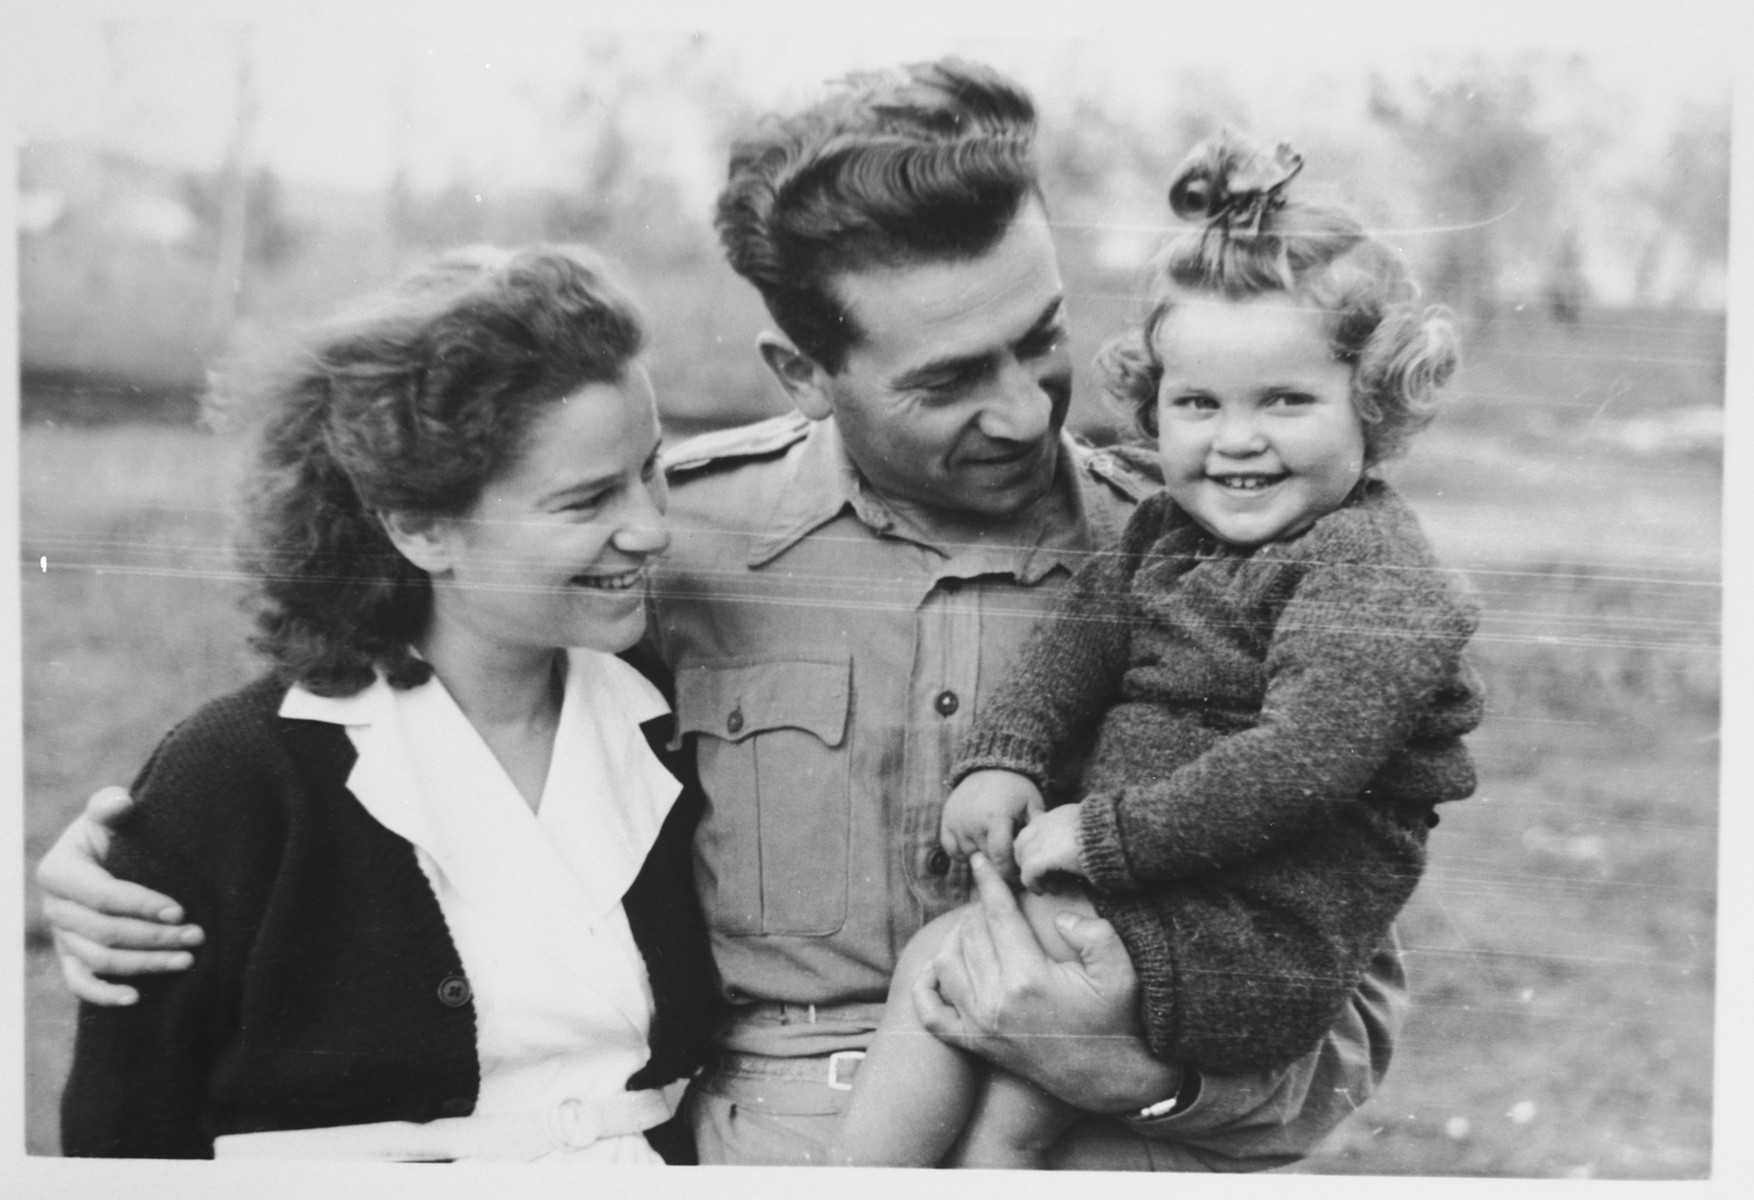 Mordechai and Ursula Tenenbaum pose with their daughter Katja in the Cinecitta displaced persons camp.